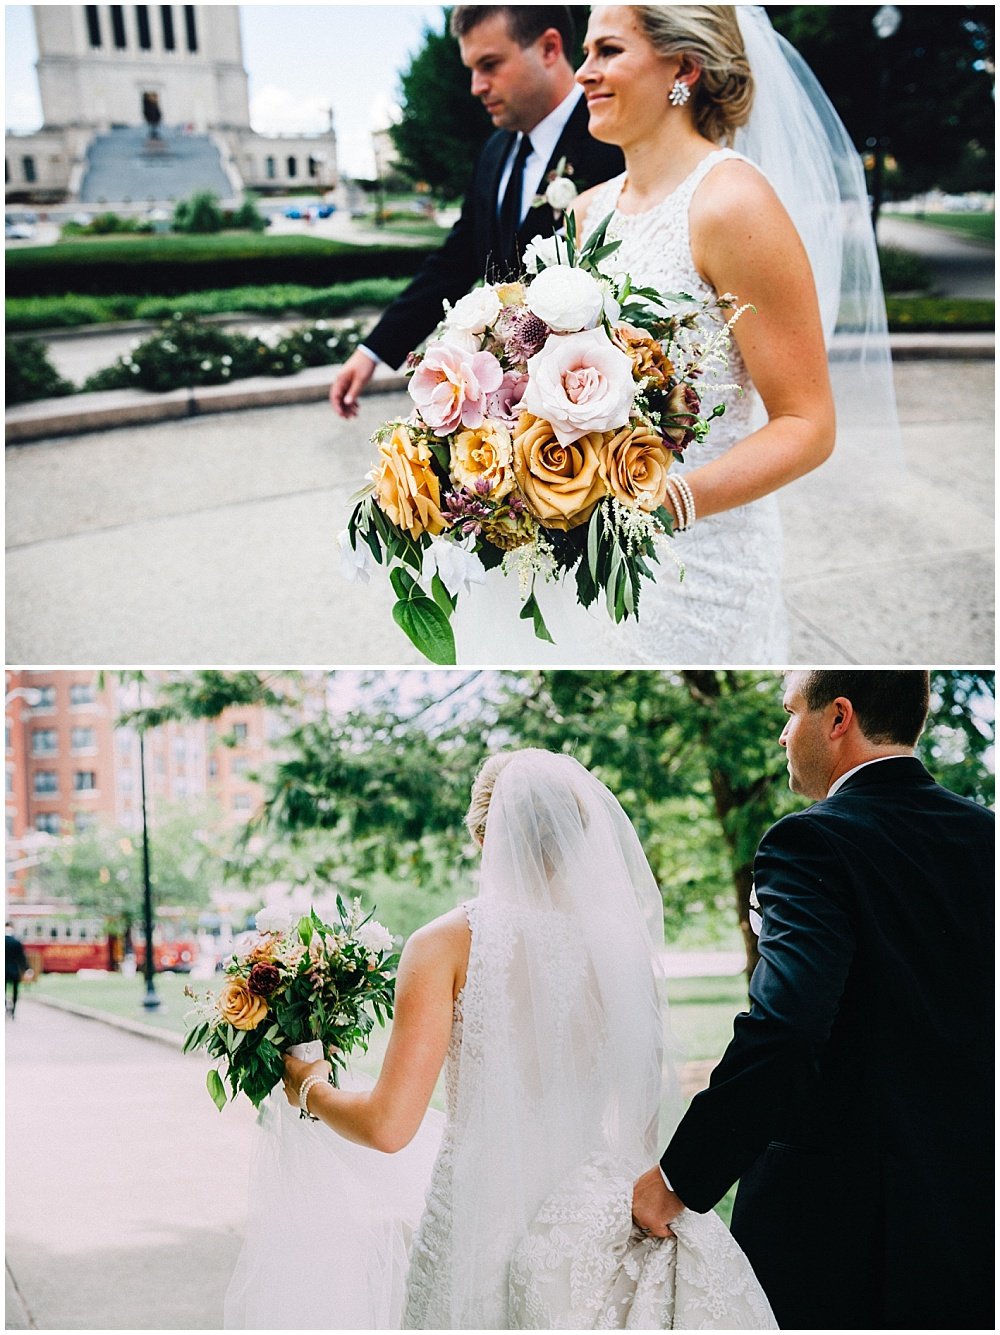 Bride and Groom summer wedding | Downtown Indianapolis Wedding by Caroline Grace Photography & Jessica Dum Wedding Coordination